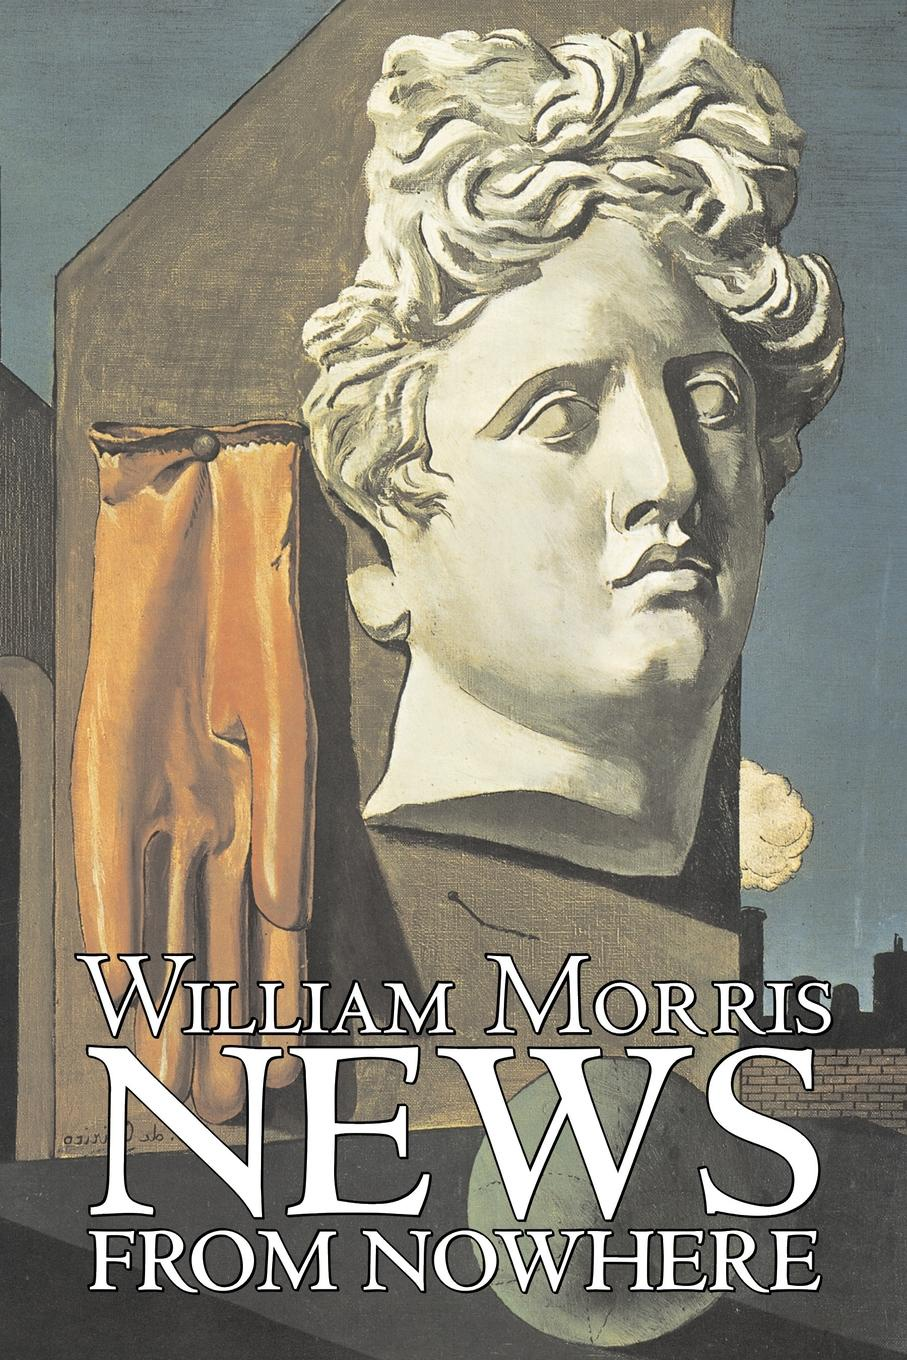 William Morris News from Nowhere by William Morris, Fiction, Fantasy, Fairy Tales, Folk Tales, Legends & Mythology